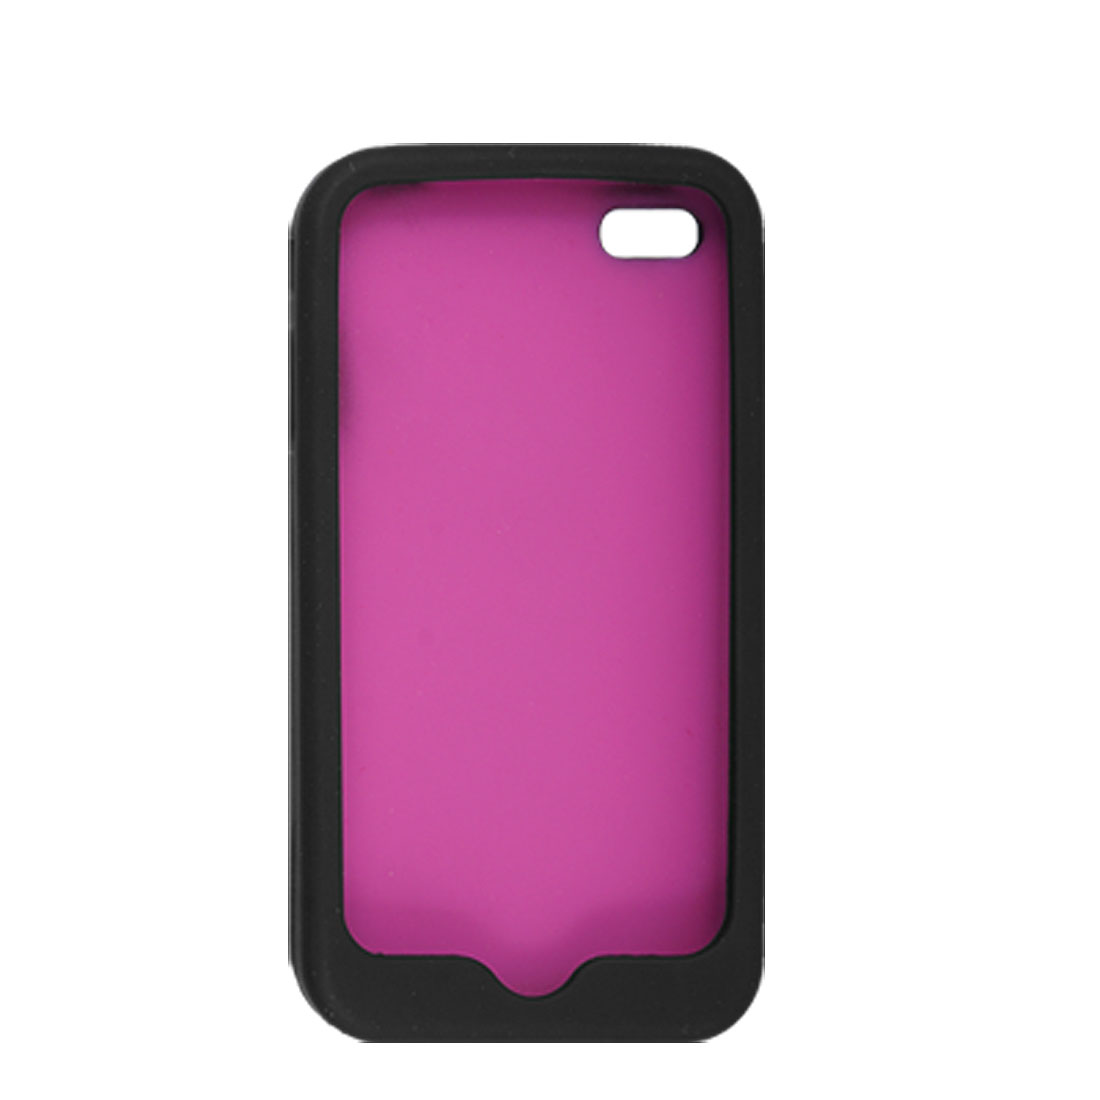 Fuchsia Black Soft Silicone Shell Case Cover for iPhone 4 4G